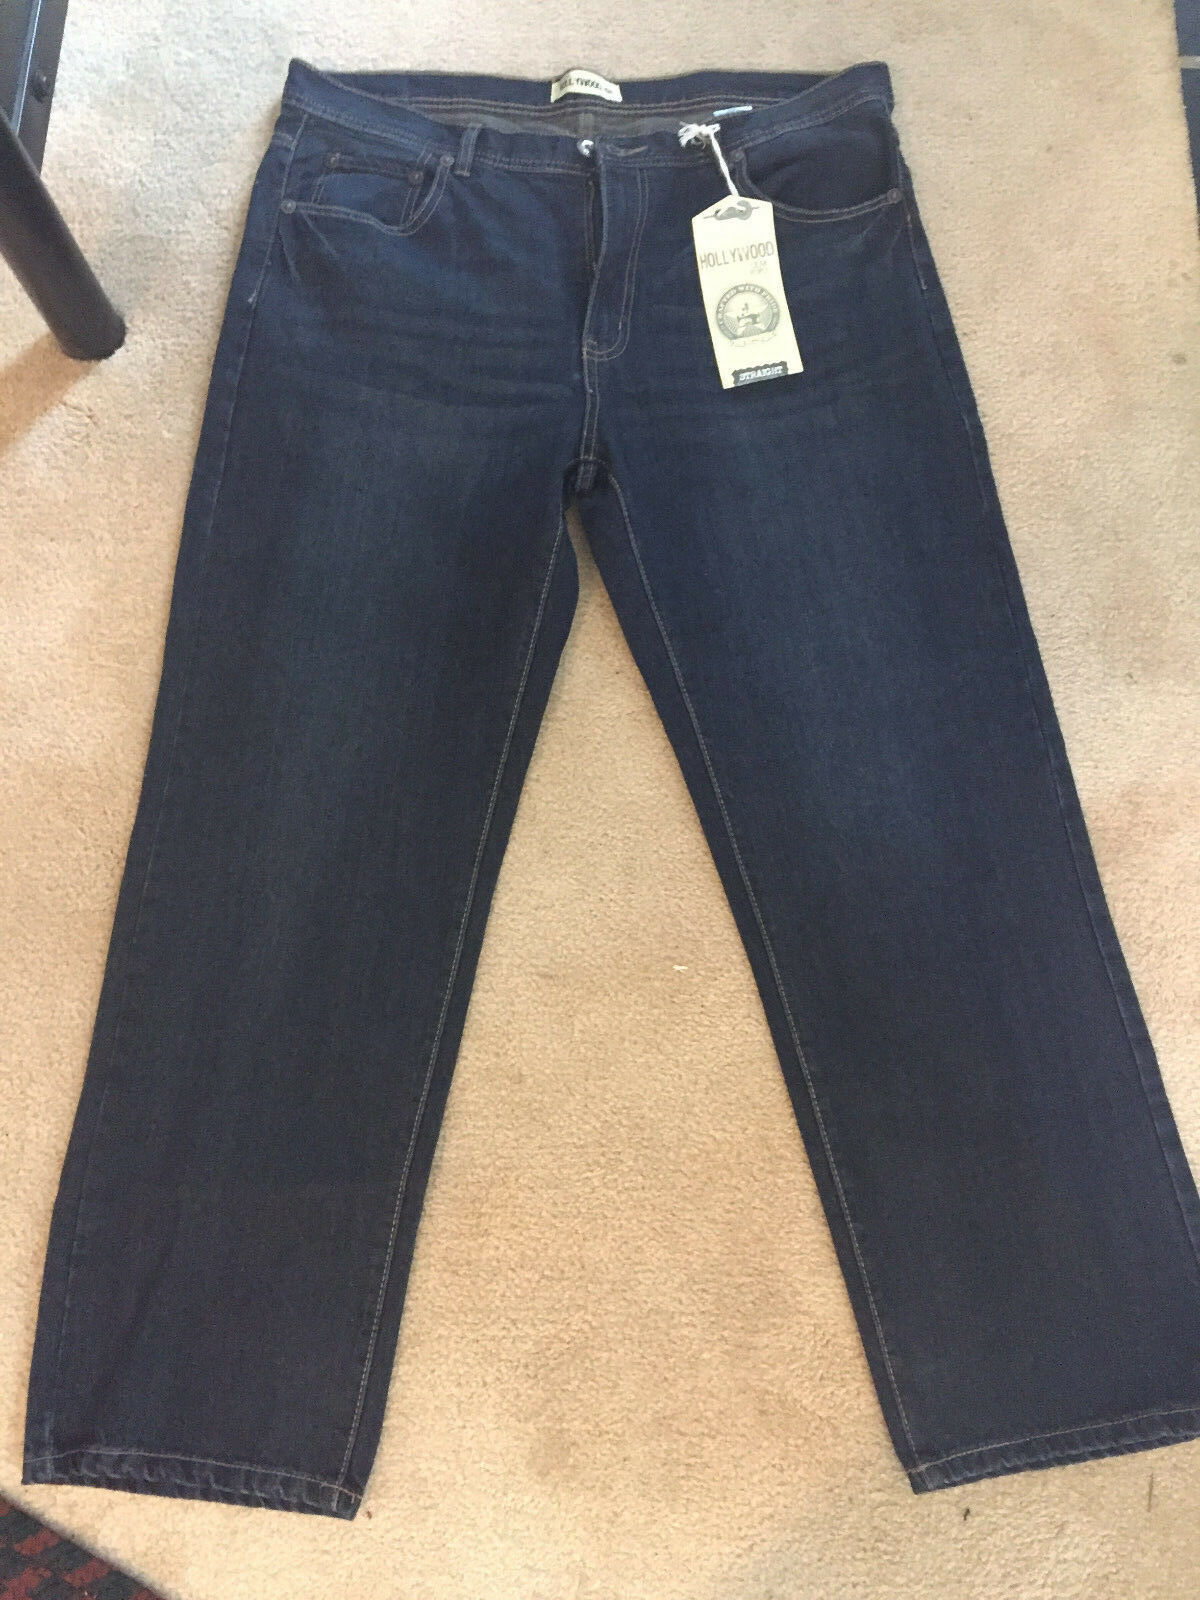 Hollywood Straight bluee Jeans 38X30 Very Popular Style